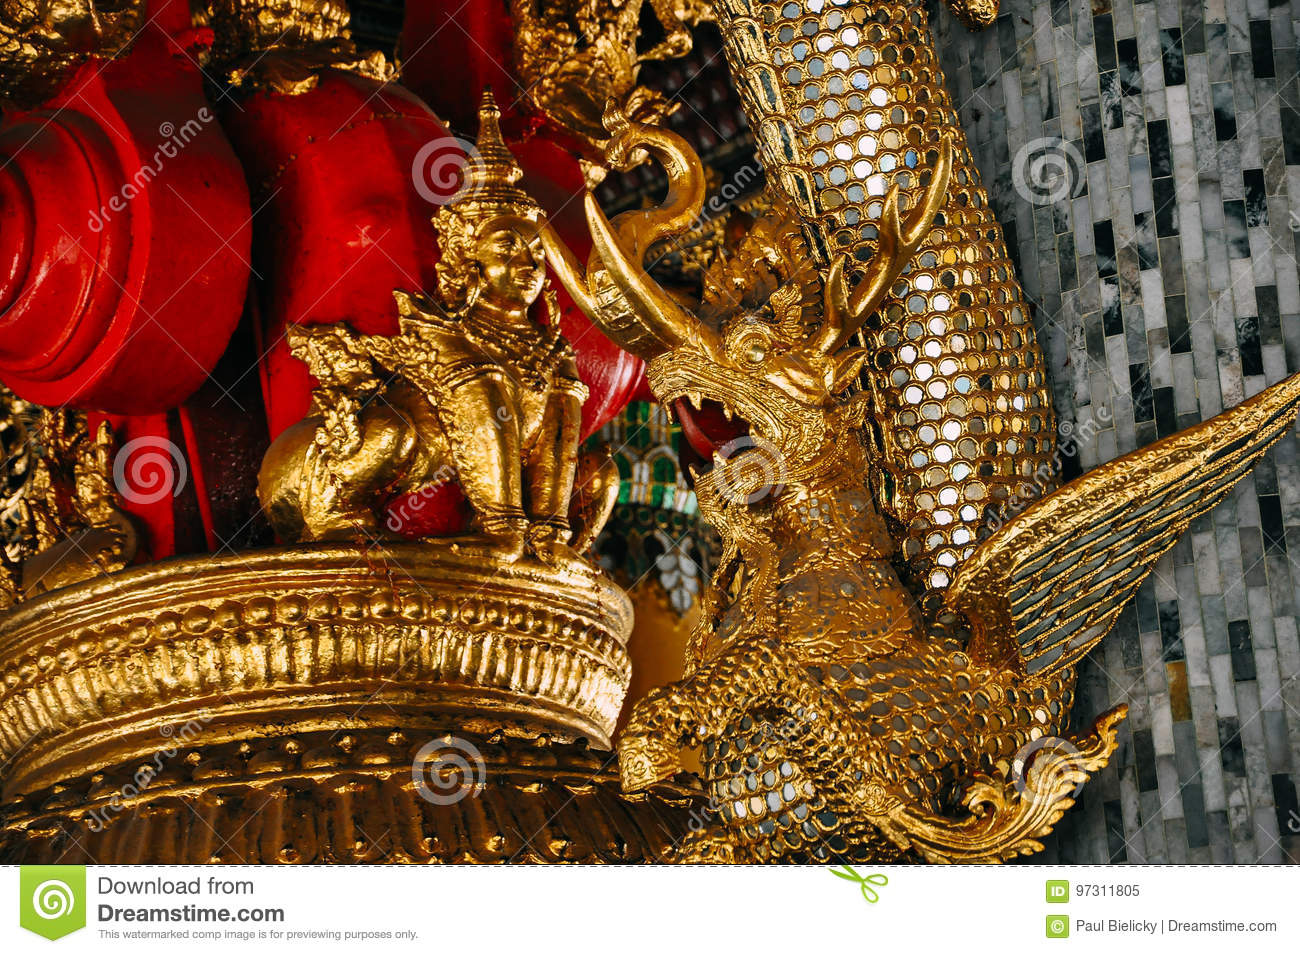 A golden dragon in a temple in Yangon.